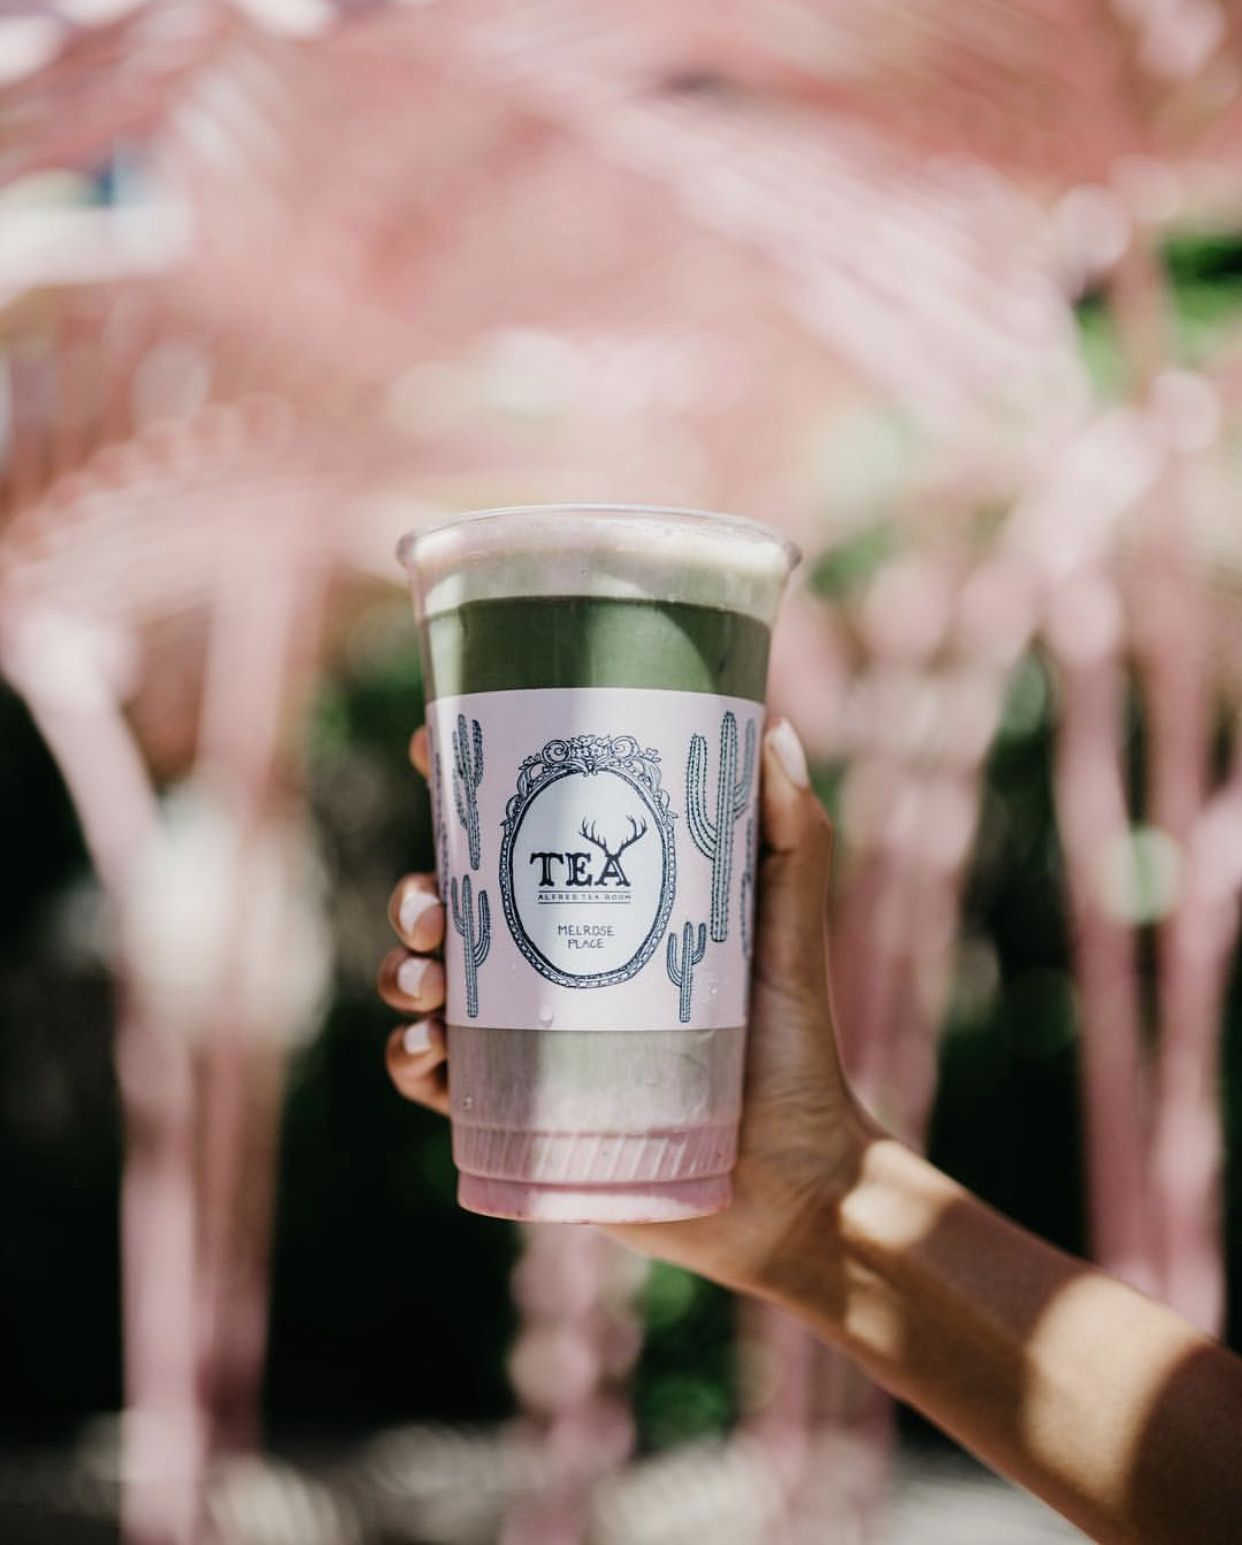 Dunkin donuts coffee cup image by Ivie Blake on JUICE